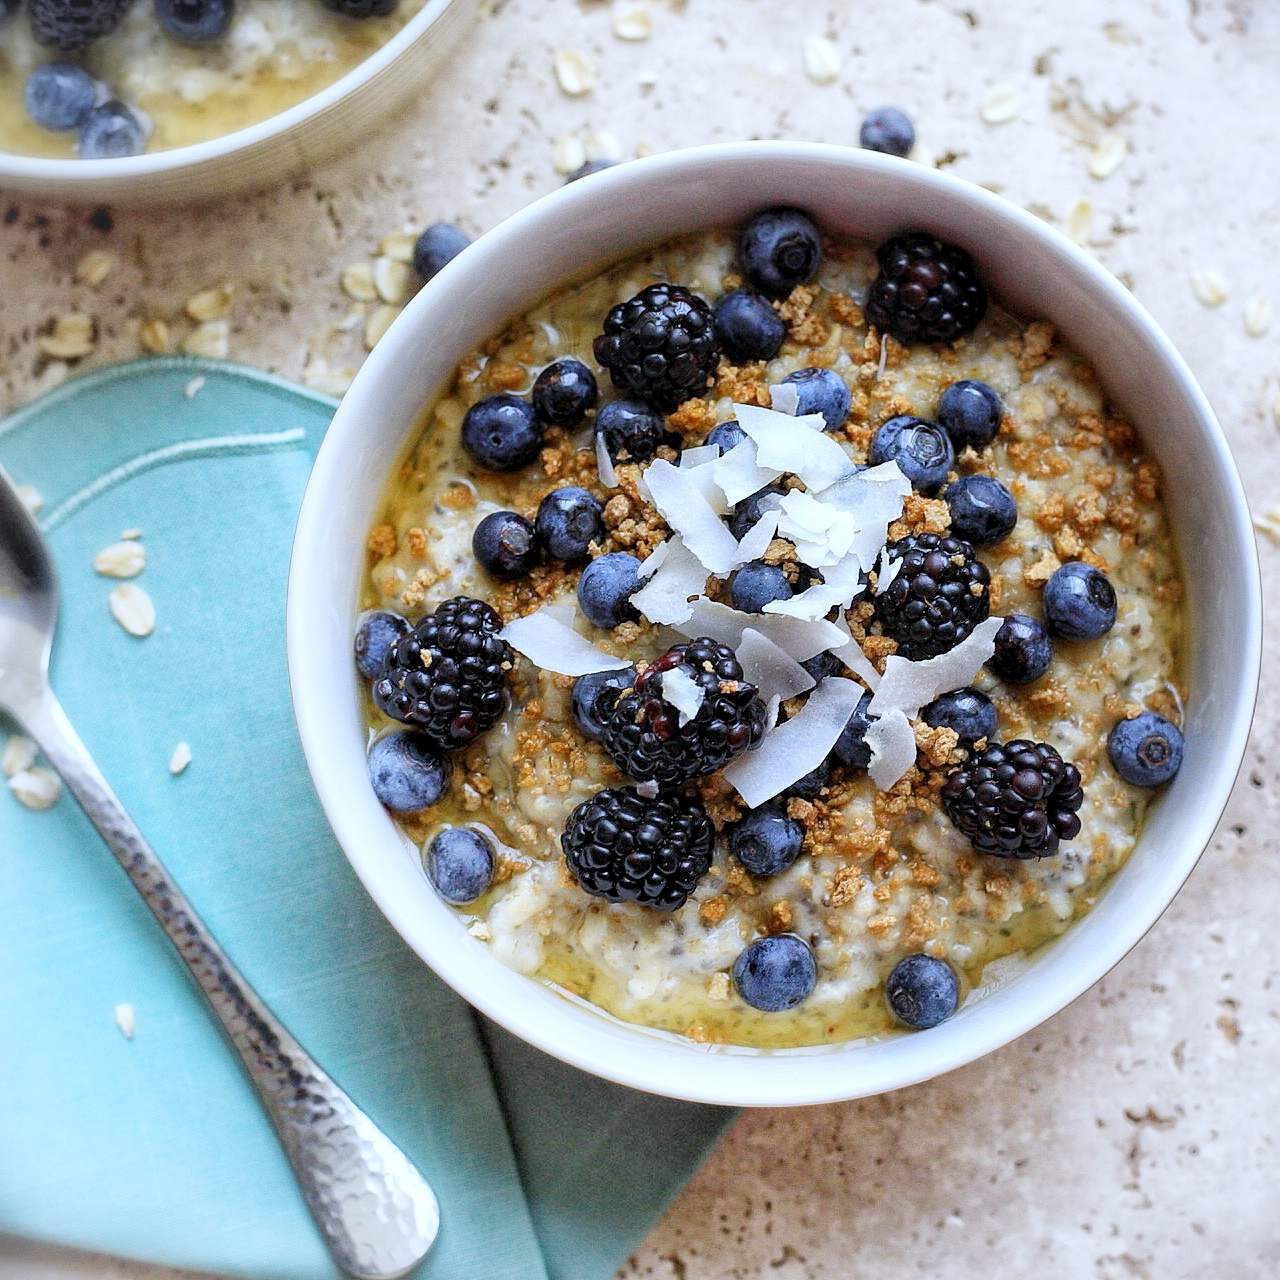 Oatmeal topped with berries